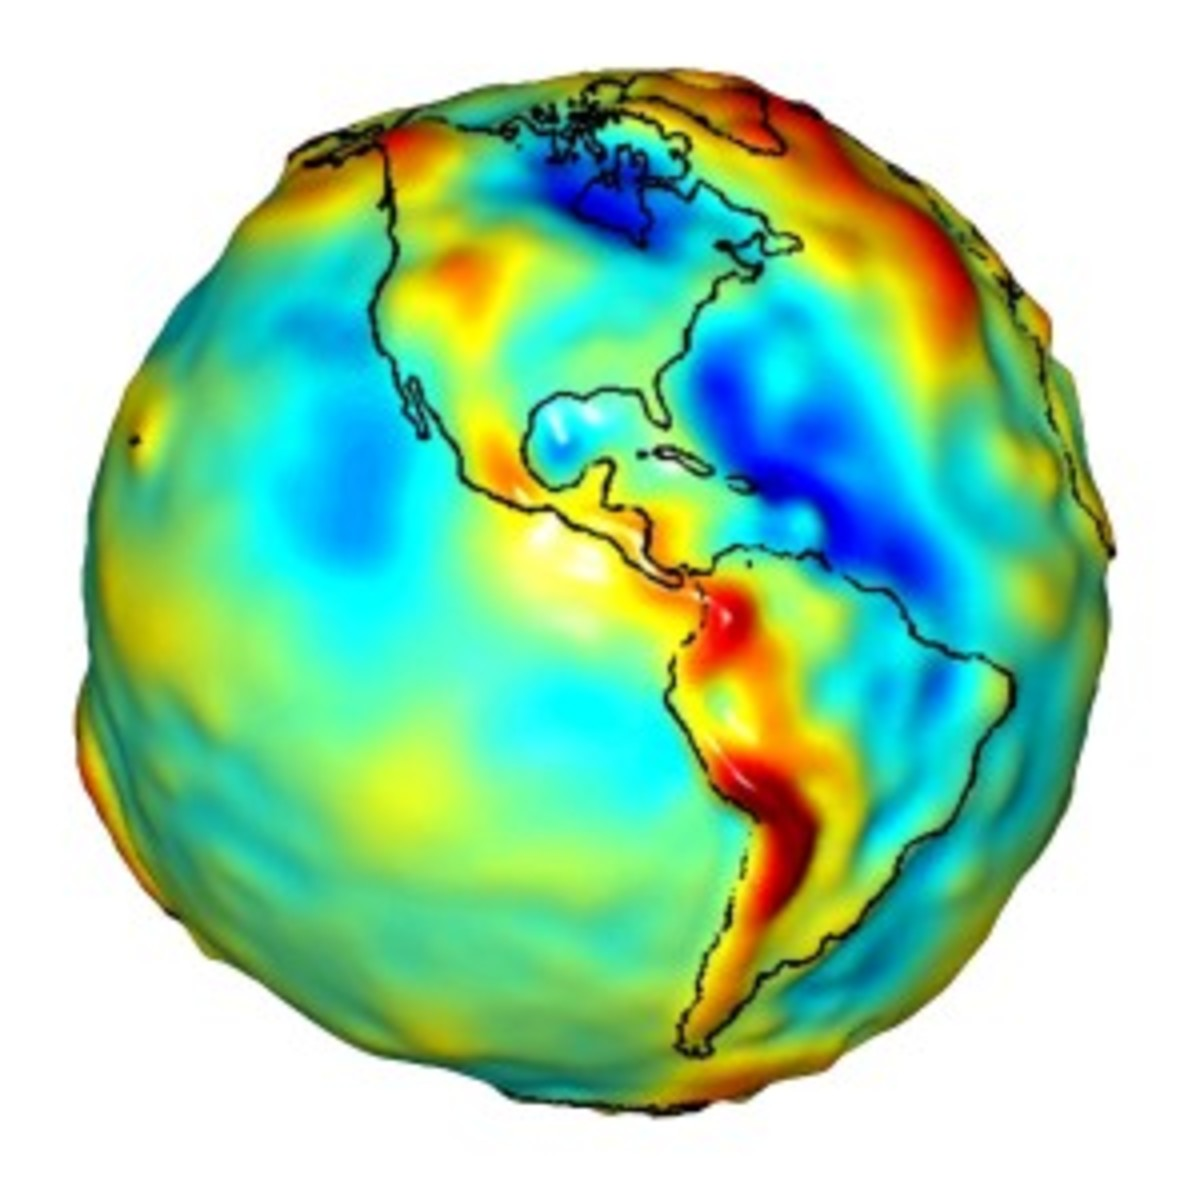 Gravity map of the Americas derived from data collected by GRACE. (University of Texas Center for Space Research)